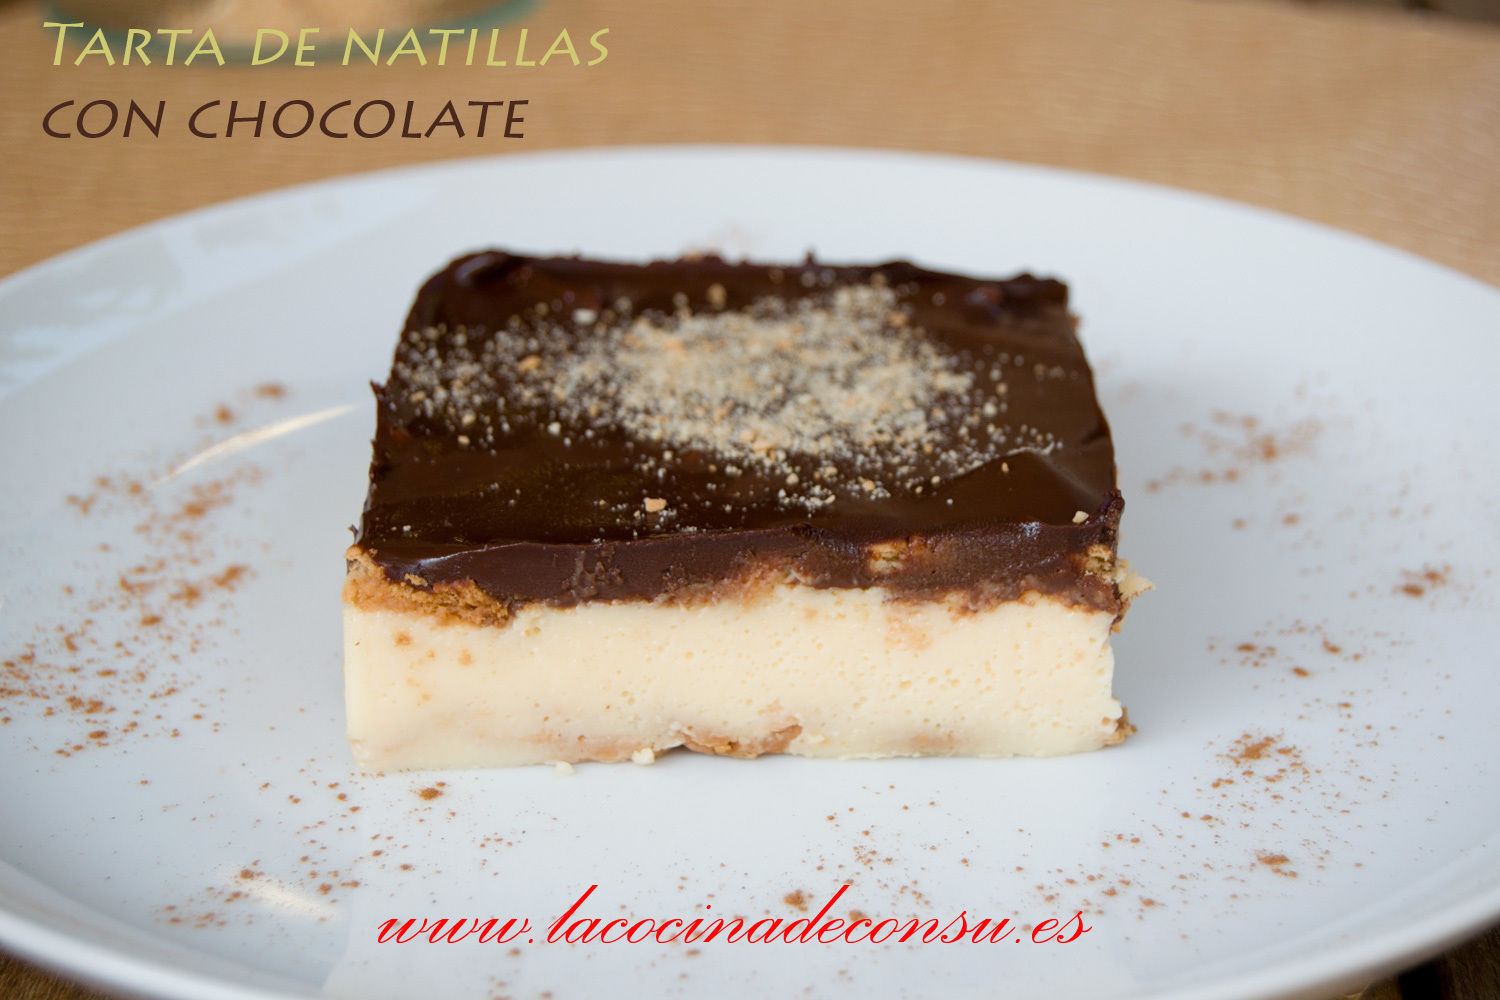 Tarta de natillas con chocolate